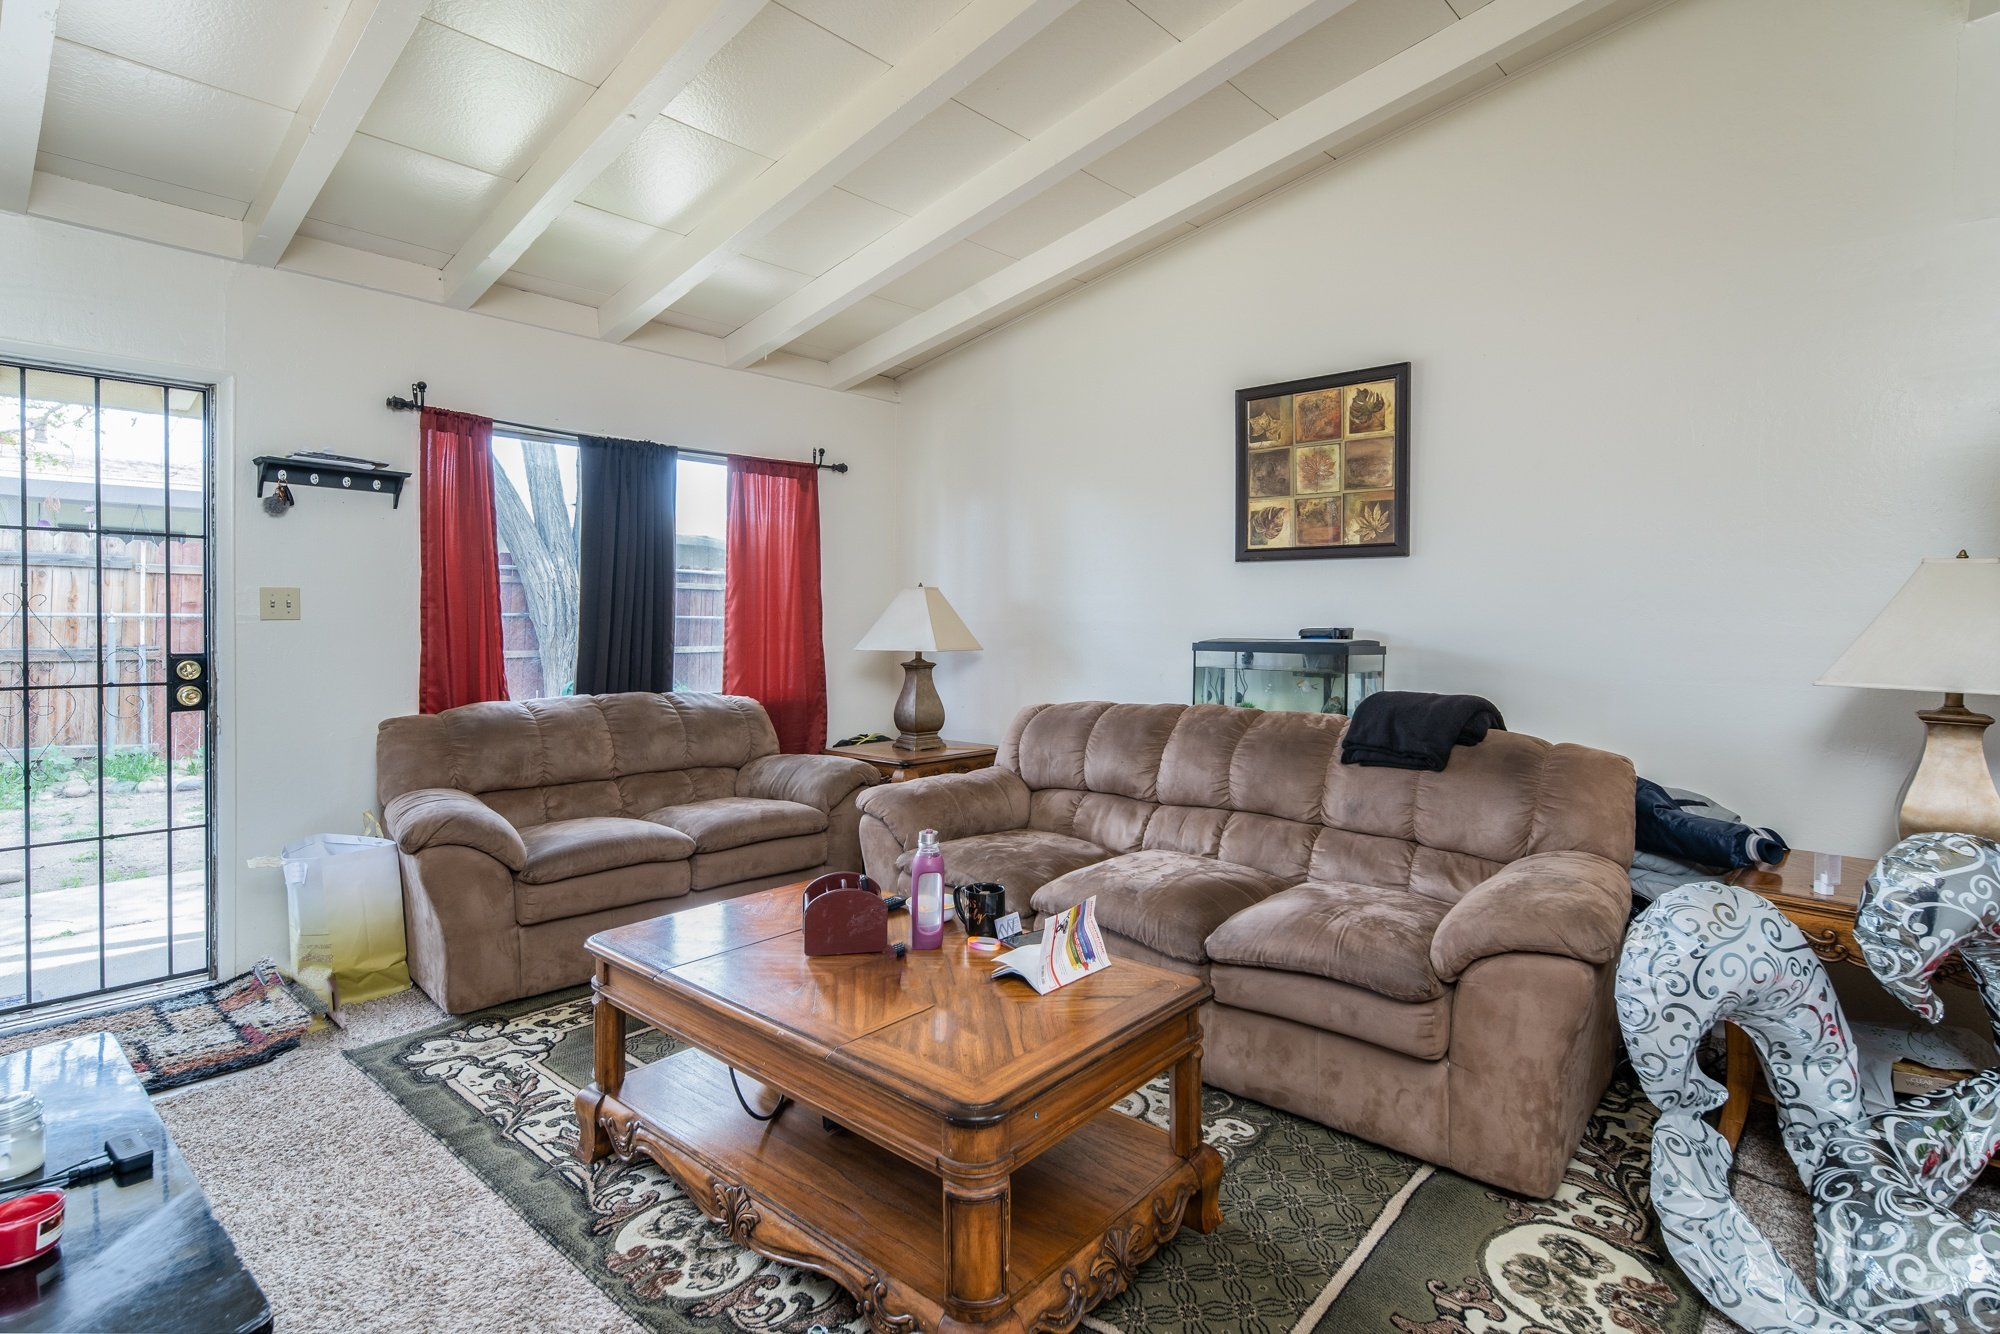 Palmdale, CA best real estate agent 557 - 559 West Avenue H 8, Lancaster, CA 93534 (living room 2)